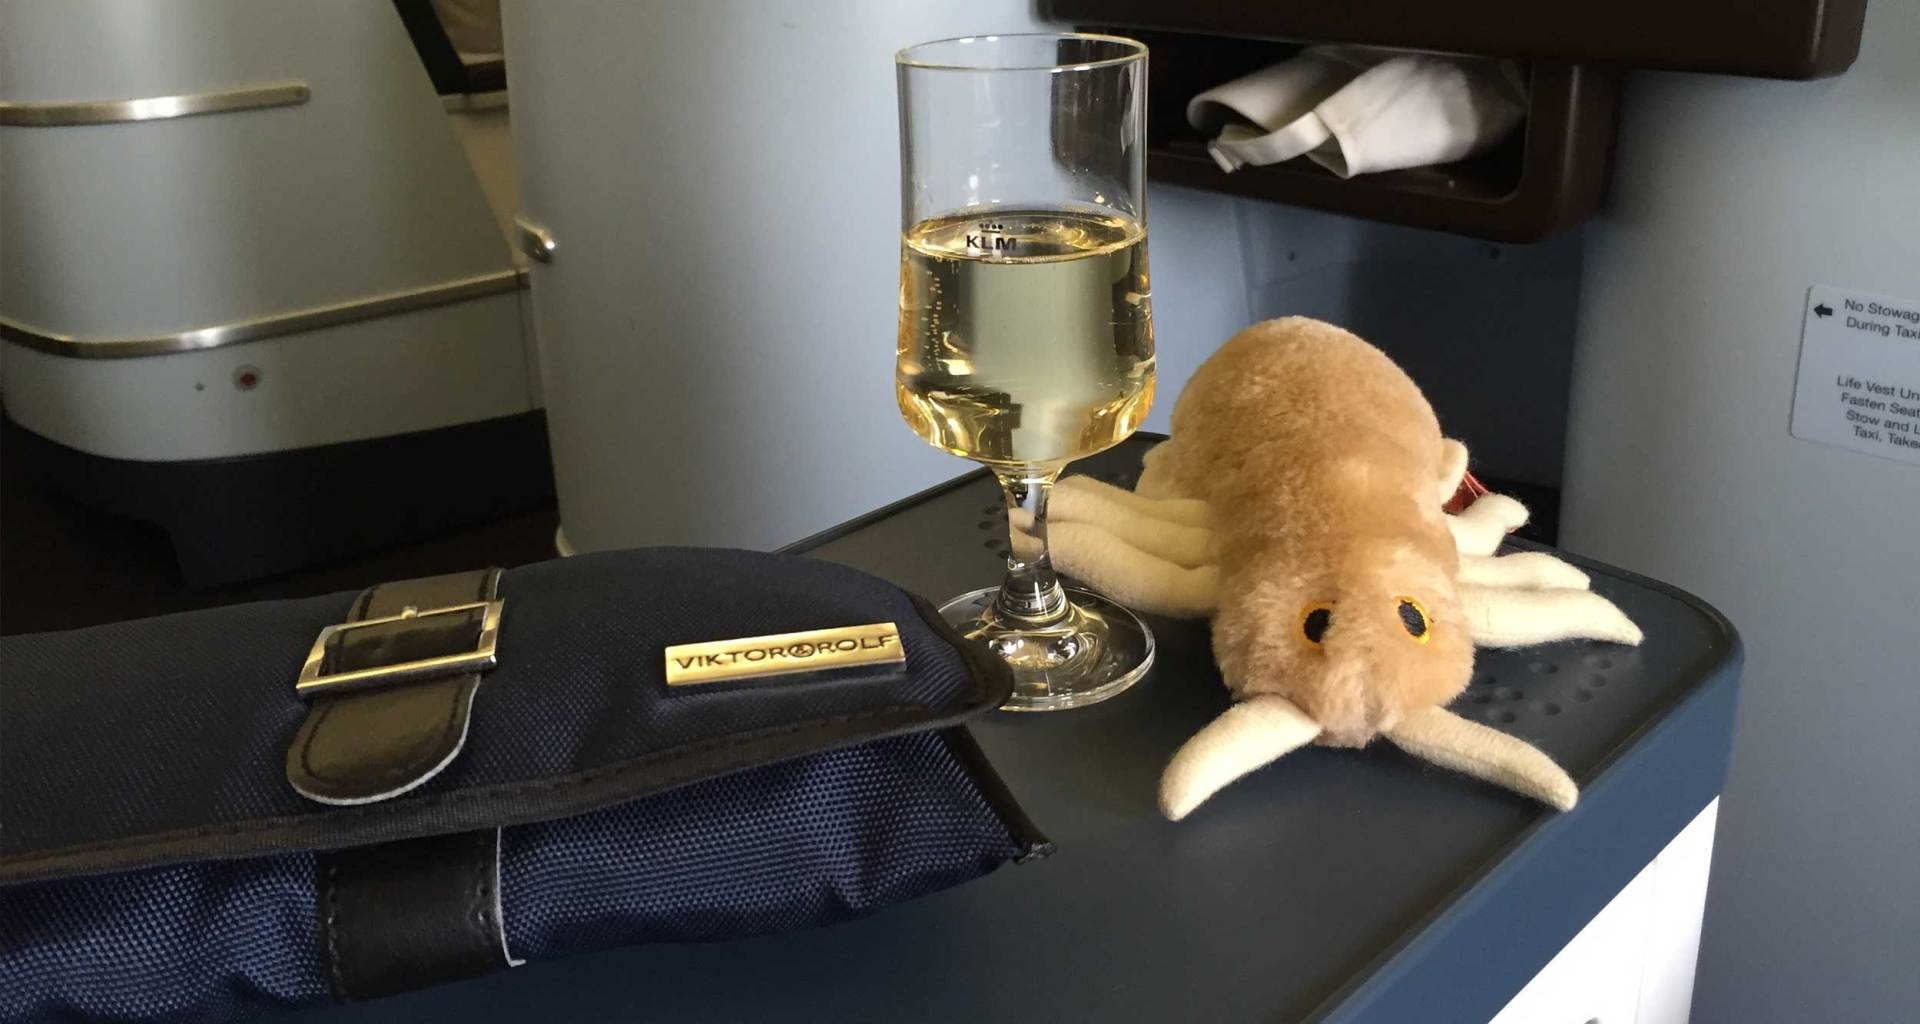 Stuffed louse next to glass of champagne on airplane tray table in business class.